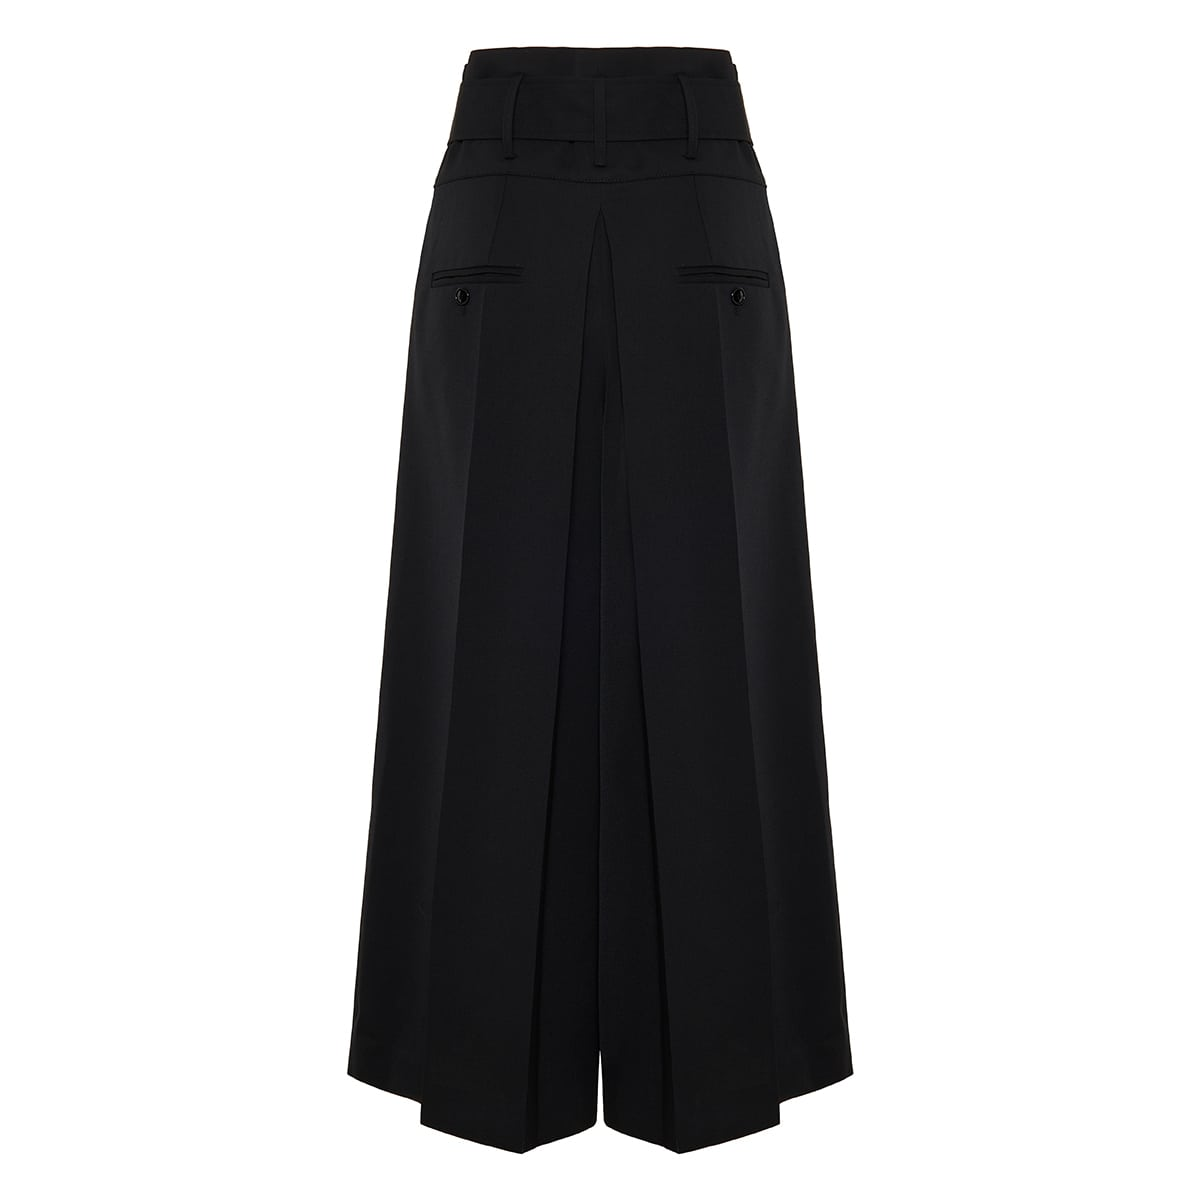 Lanakio belted wool culottes